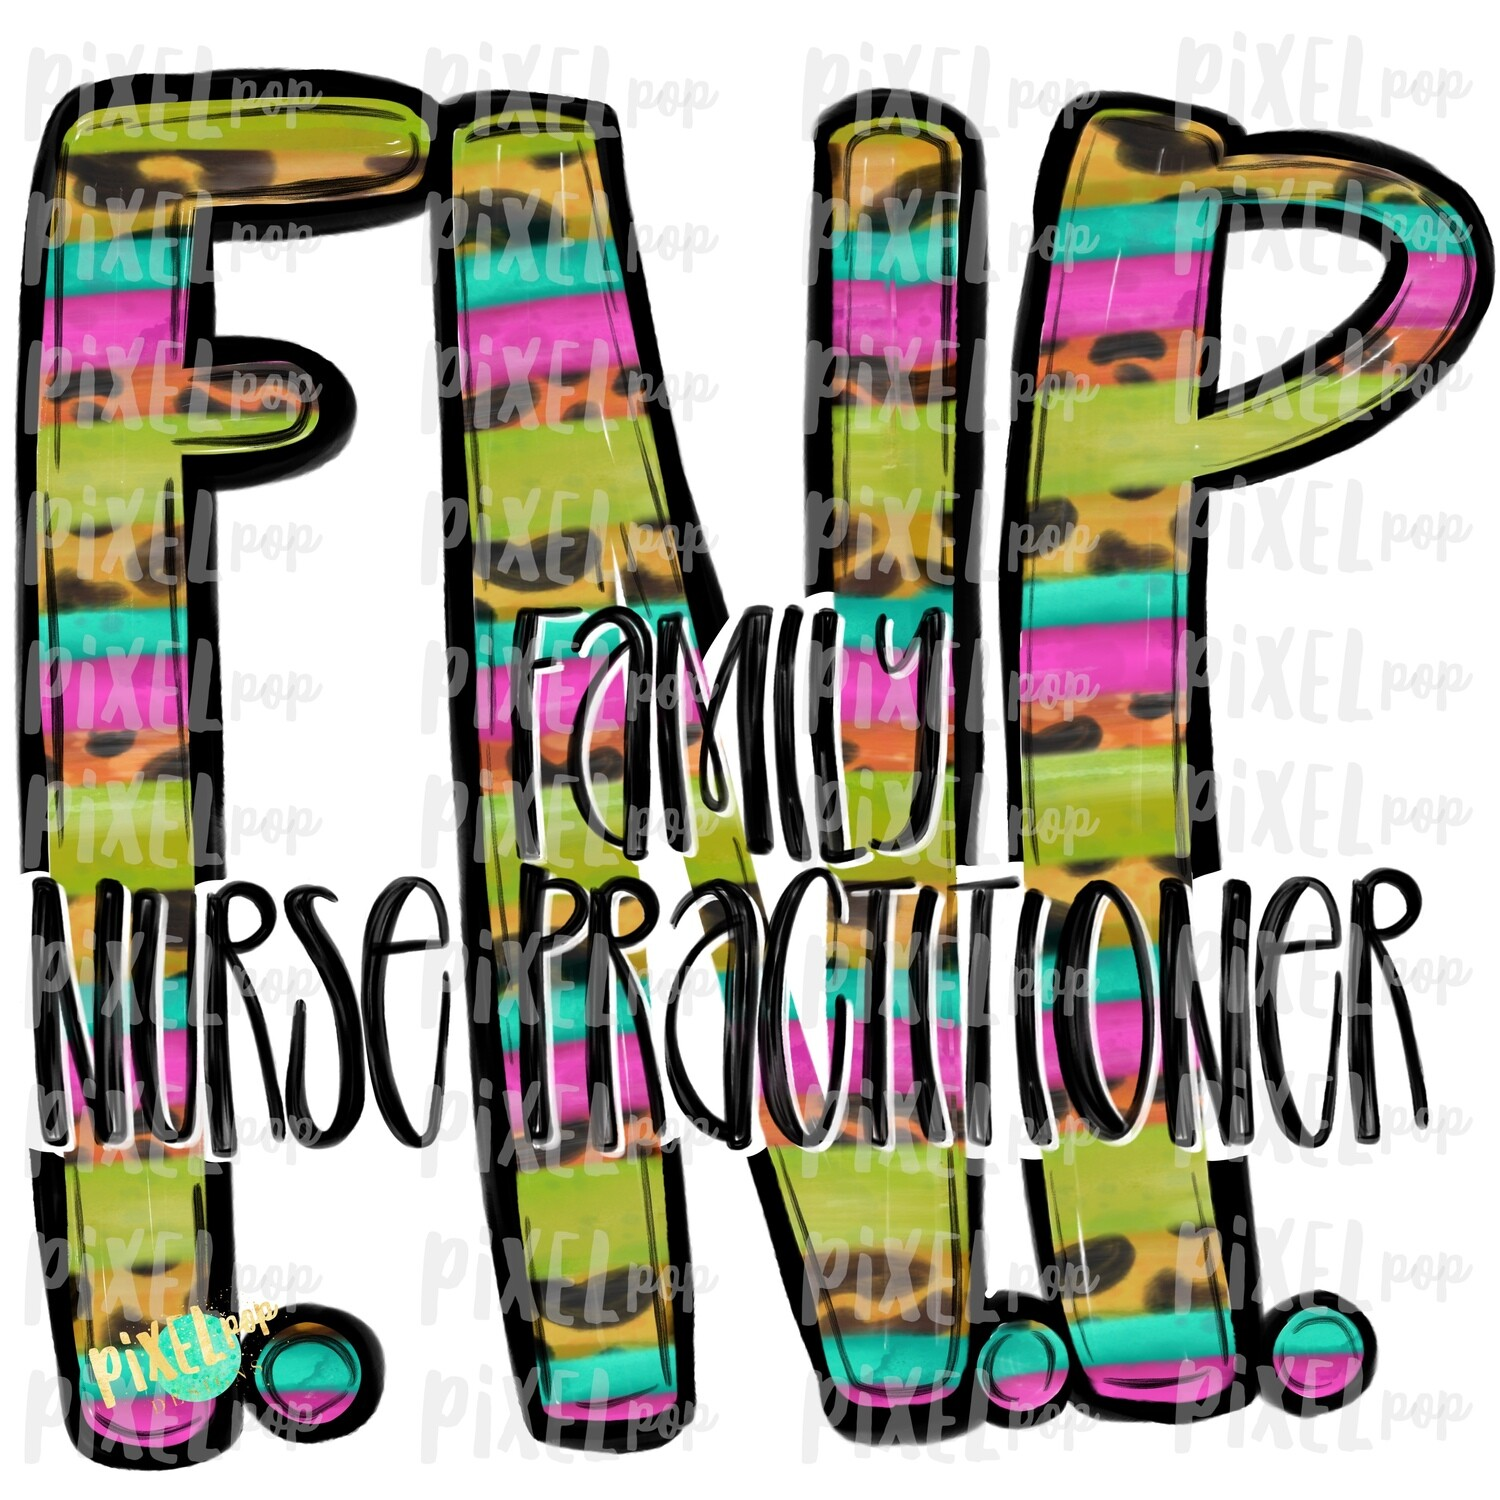 Family Nurse Practitioner Bright PNG Design | Sublimation | Hand Drawn Art | Nursing PNG | Medical Clipart | Digital Download | Art